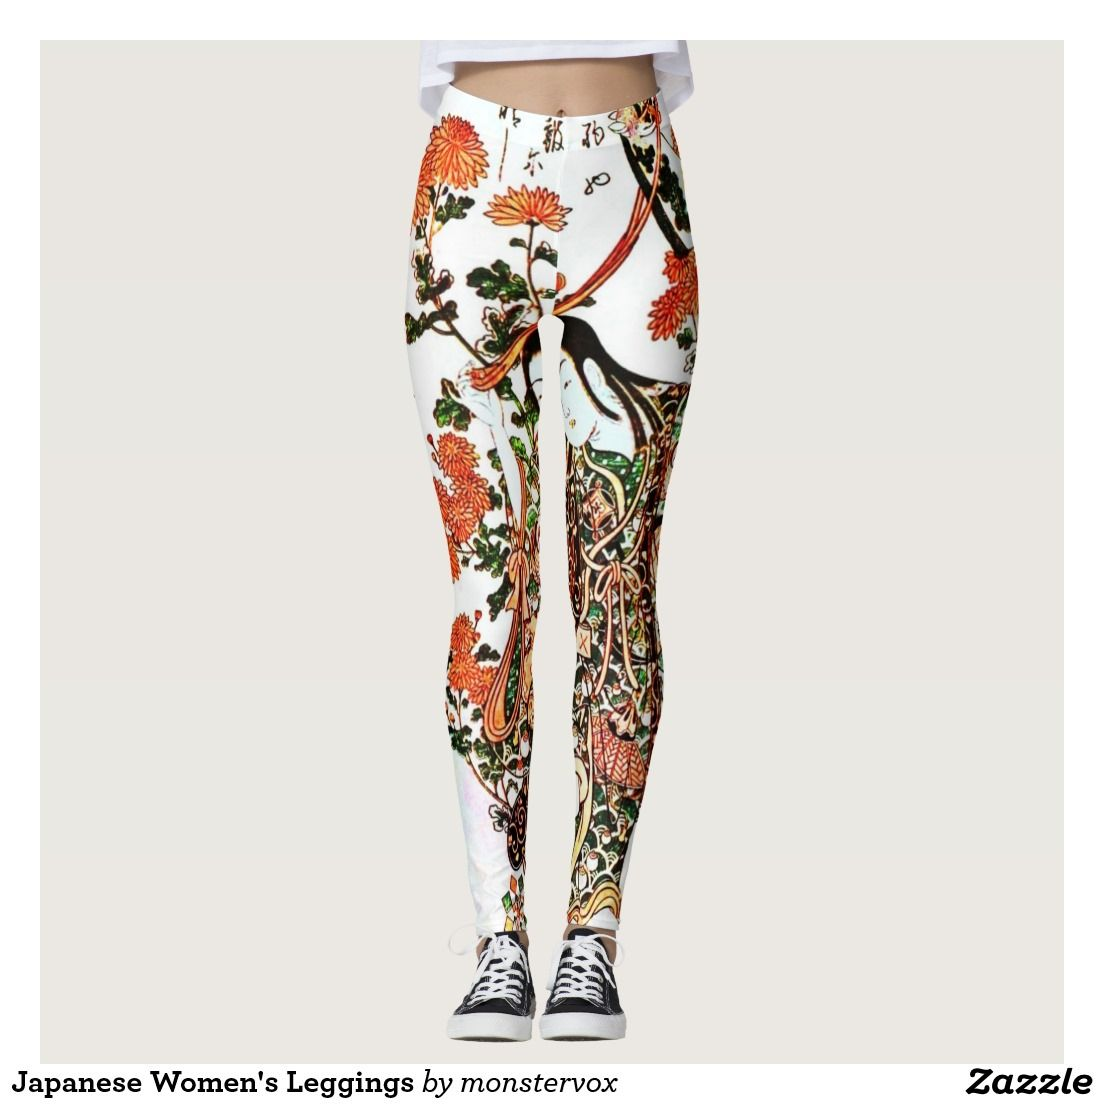 2adb3dc778 Japanese Women's Leggings #Leggings #Yoga #Pants #Activewear #Sports  #SportsWear #Athletic #Fashion #Design #Japan #Japanese